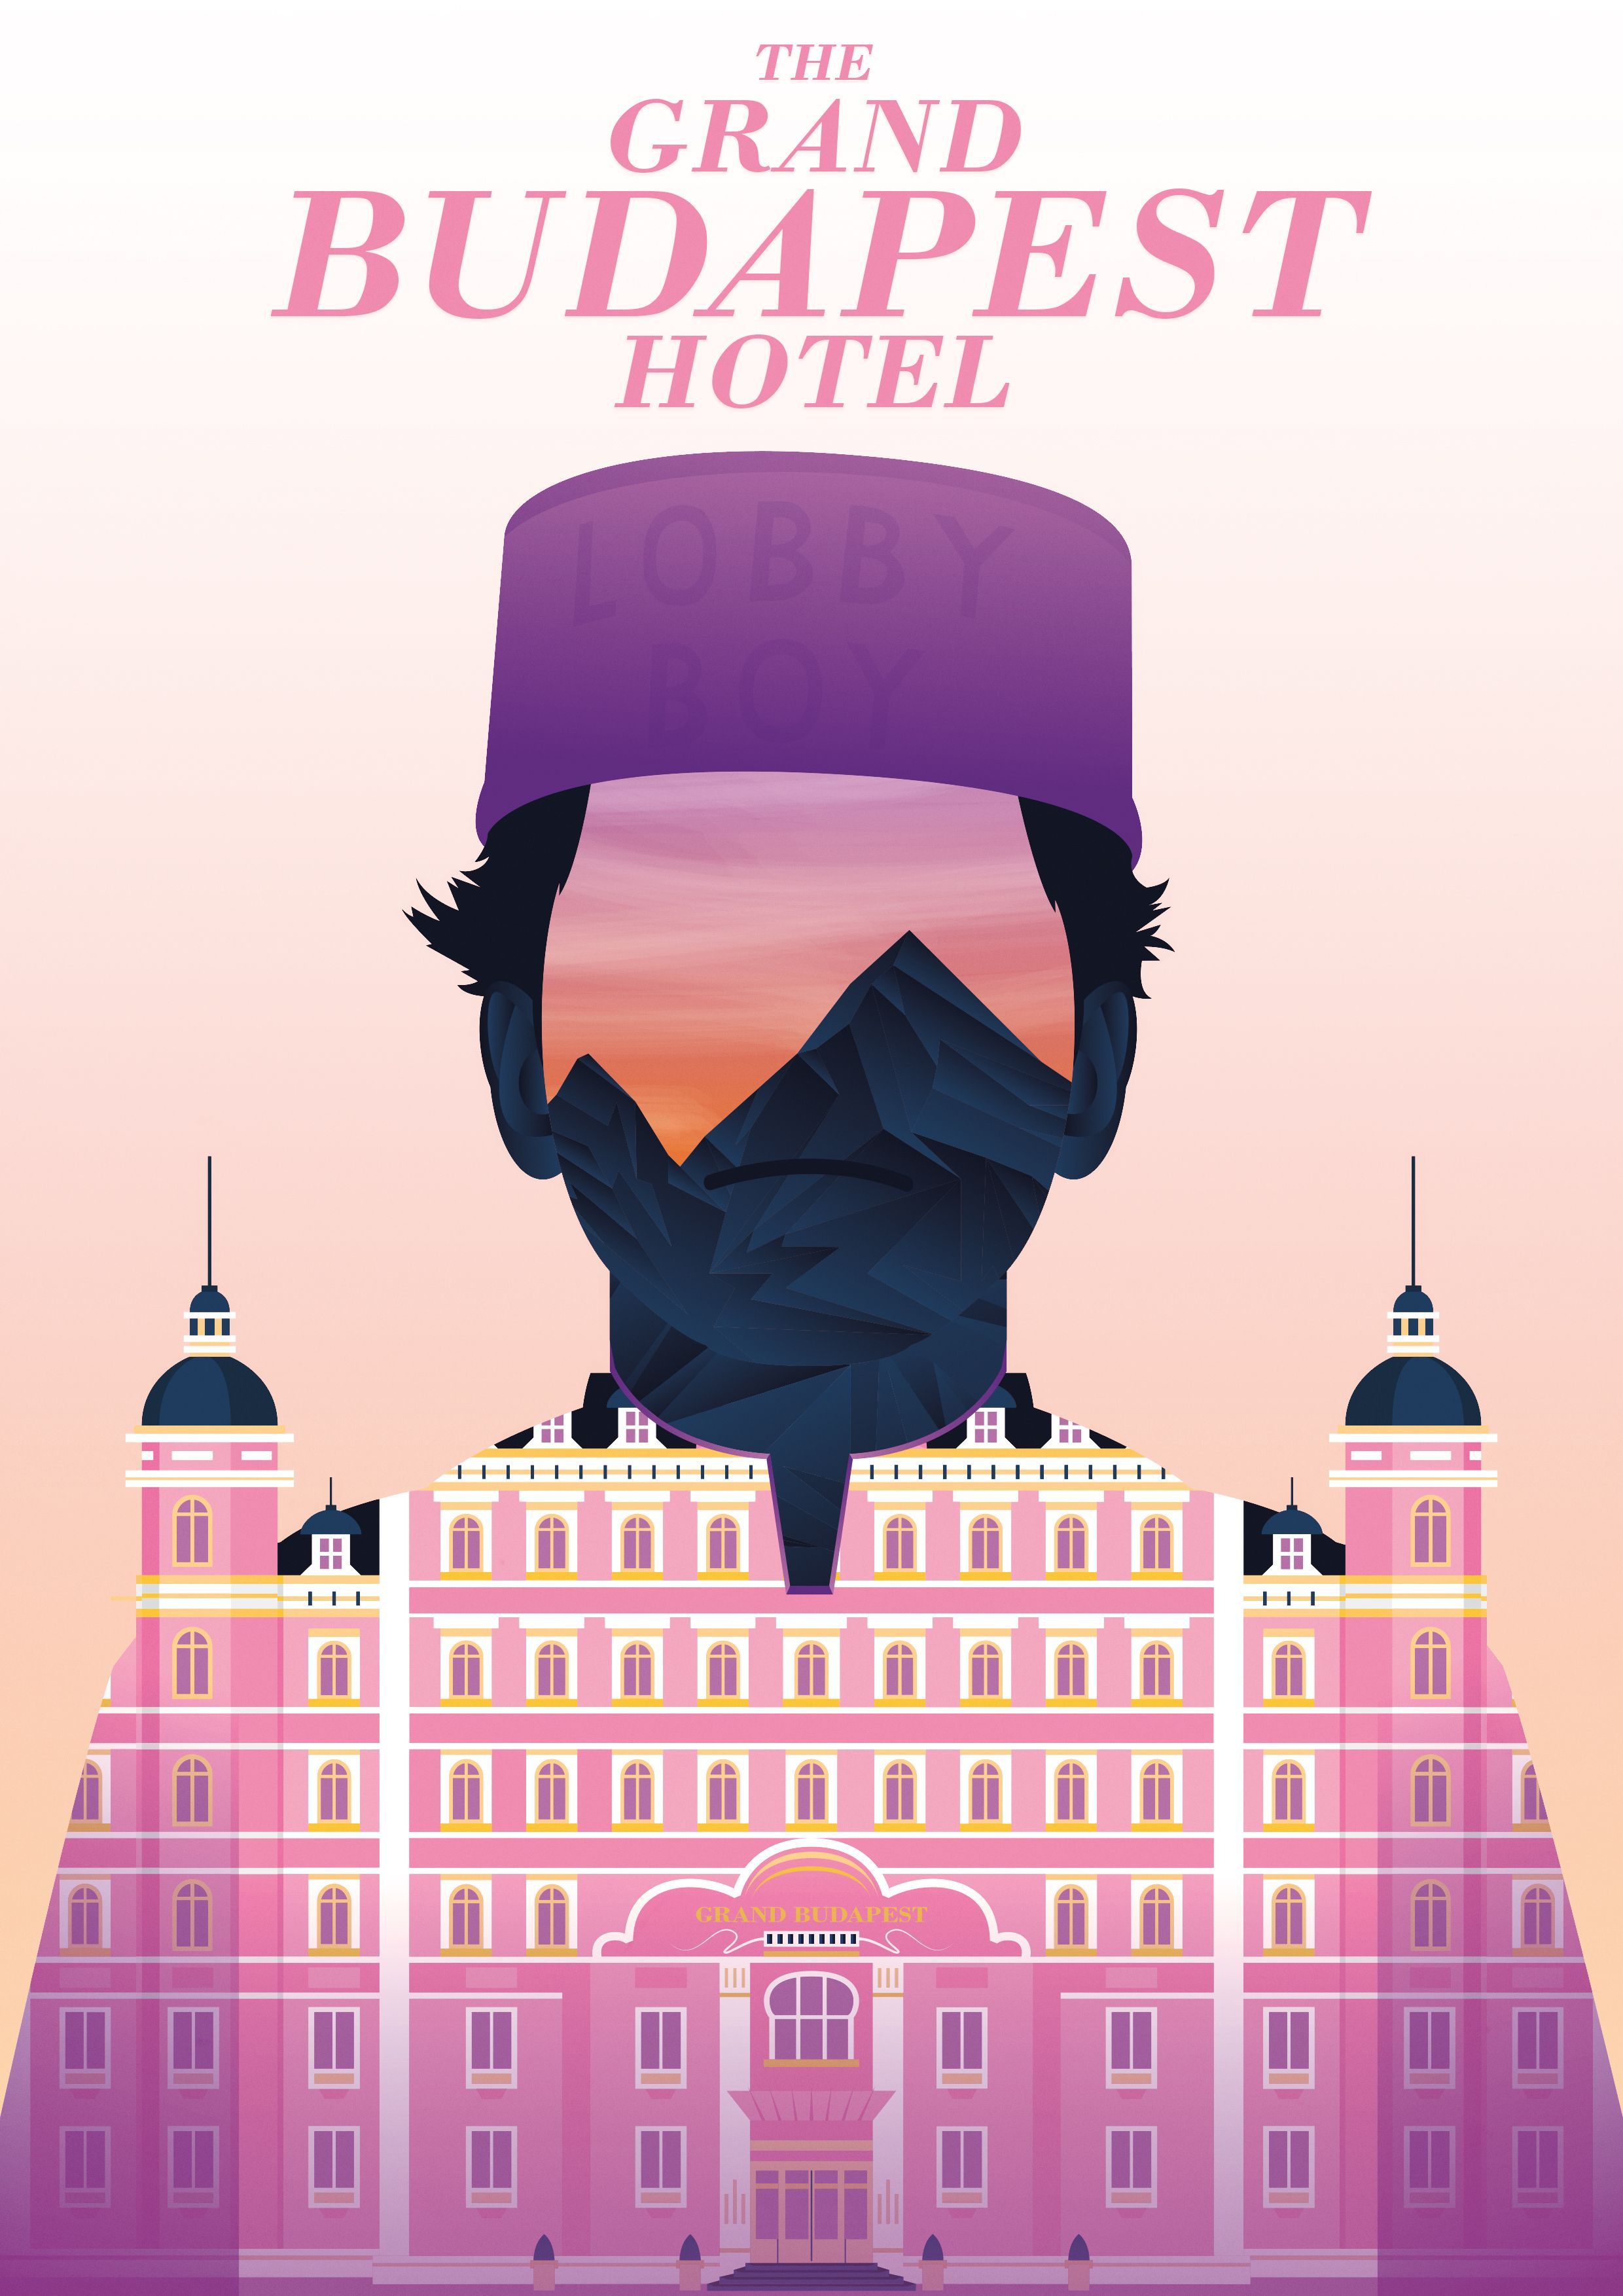 The Grand Budapest Hotel Movie Poster Print T264 A4 A3 A2 A1 A0|